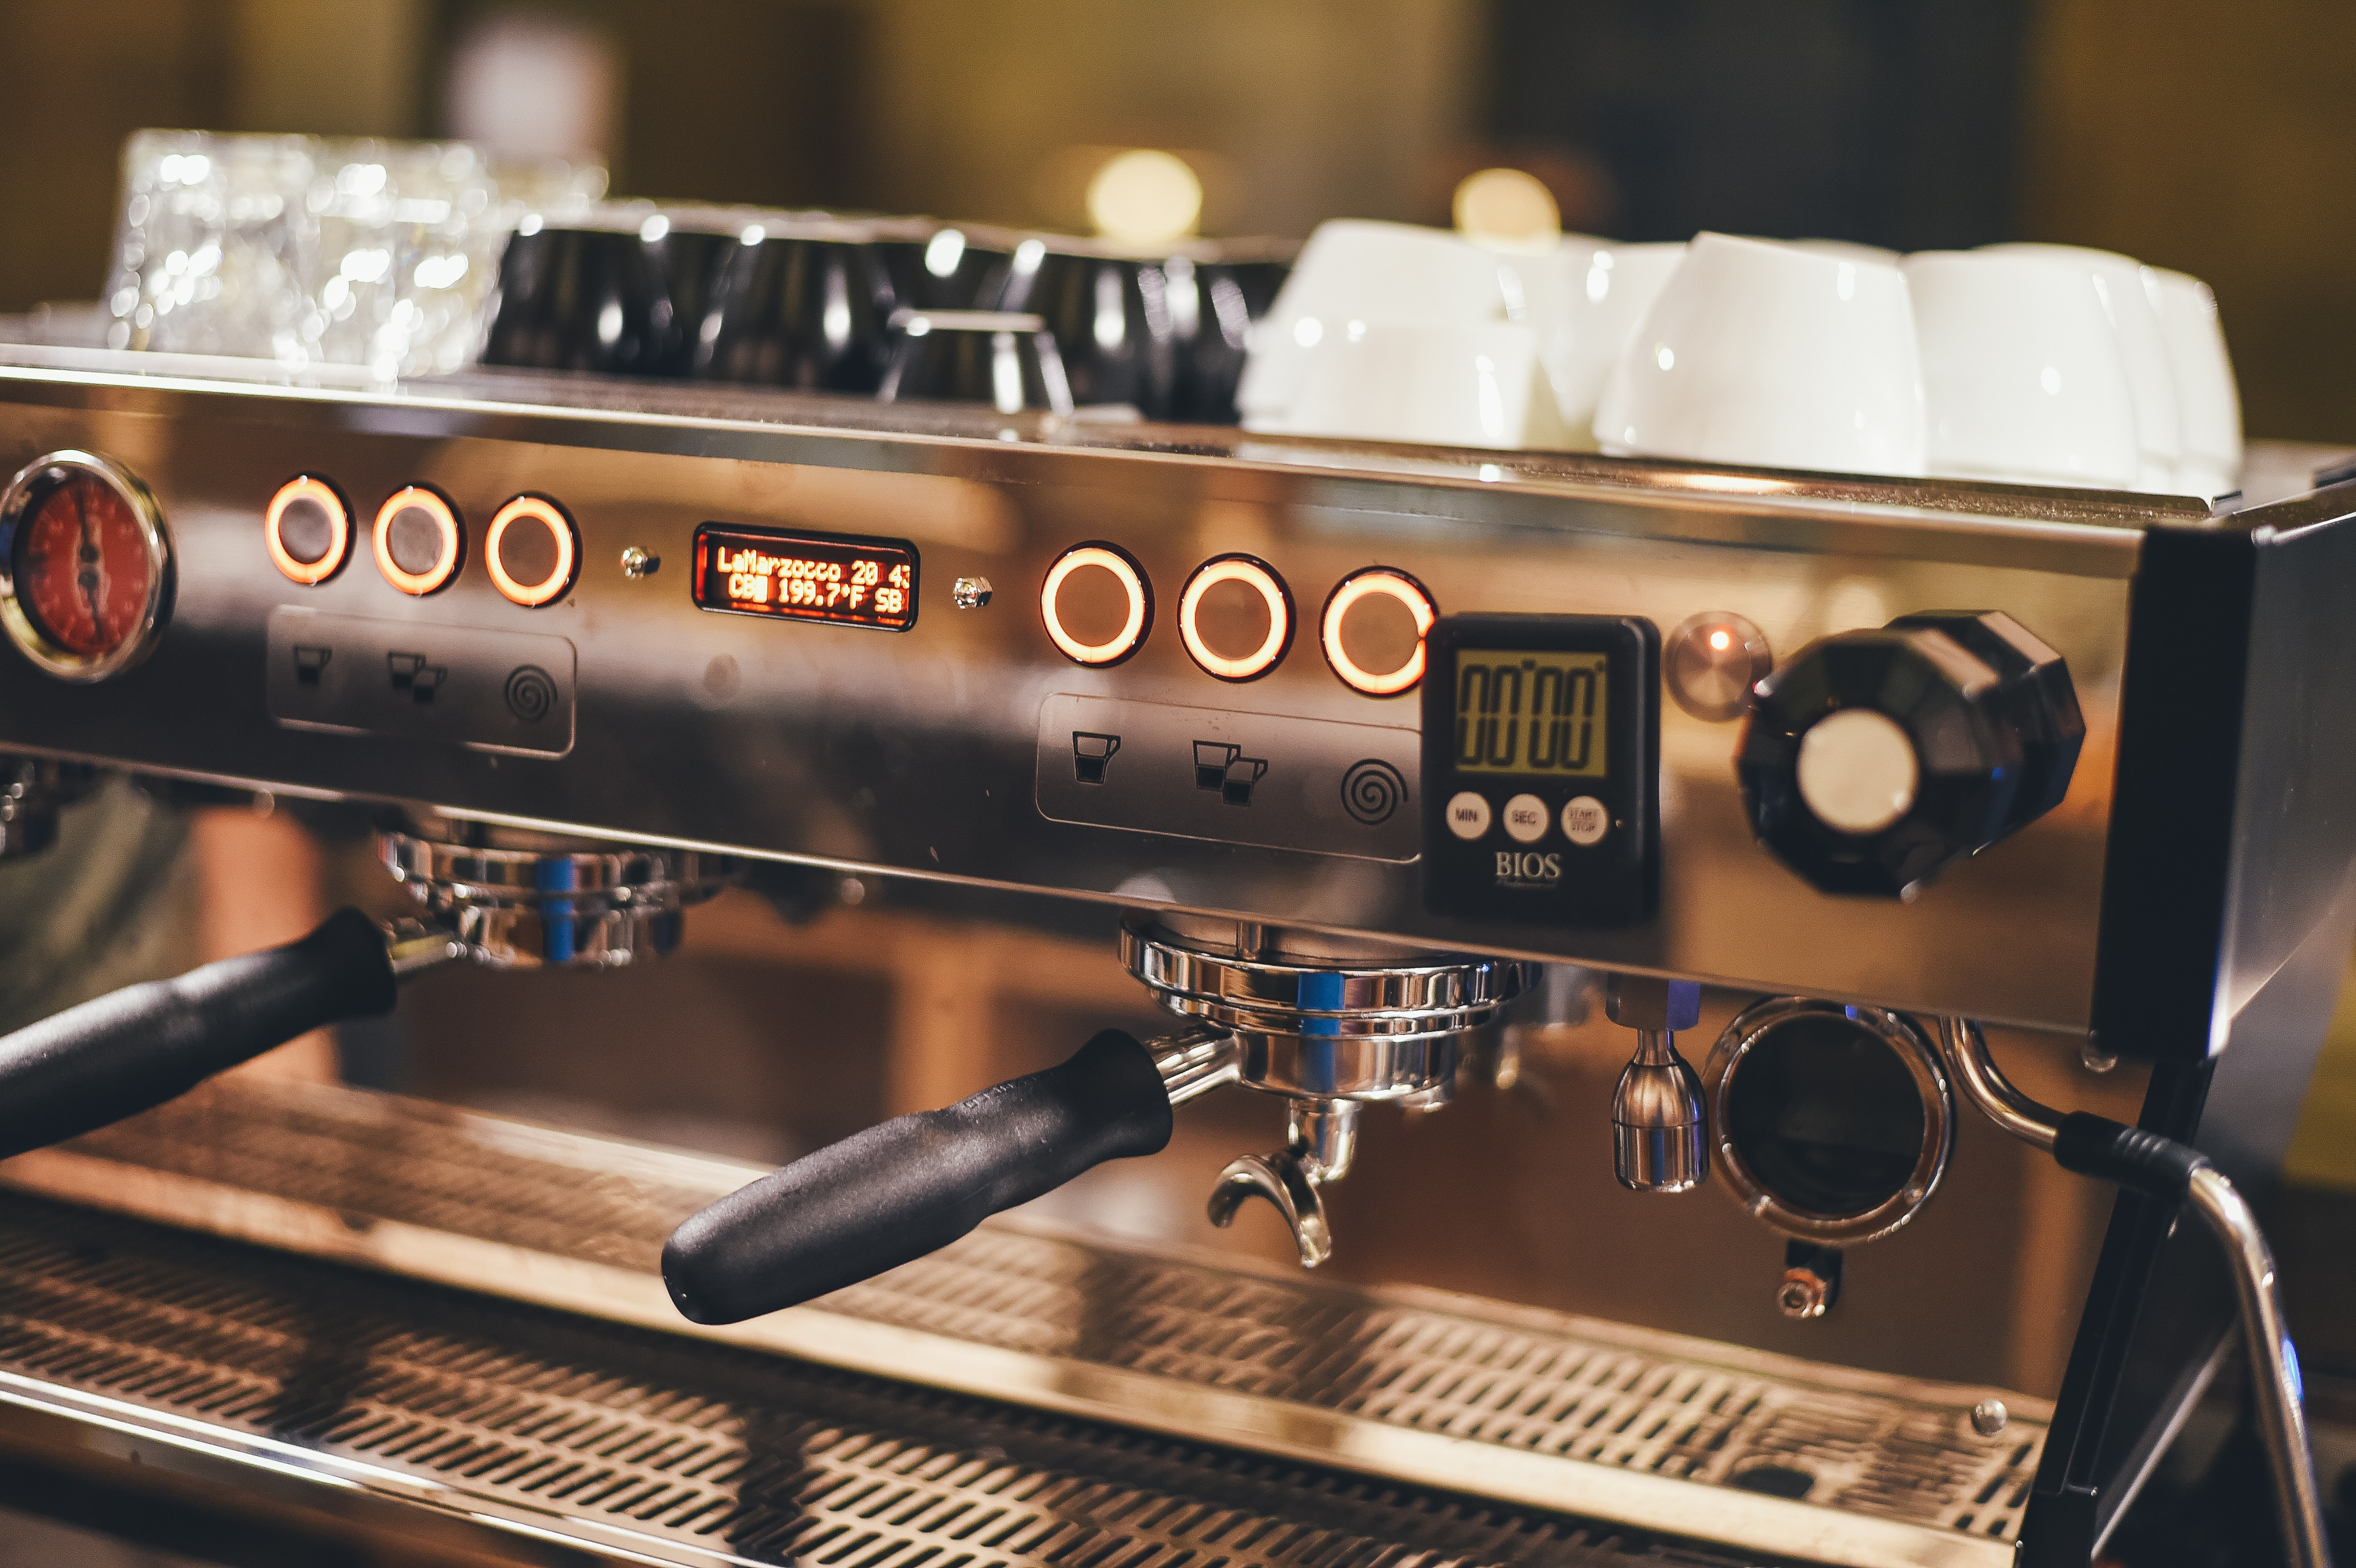 photo of espresso machine - hire a licensed electrician for appliance power feeds